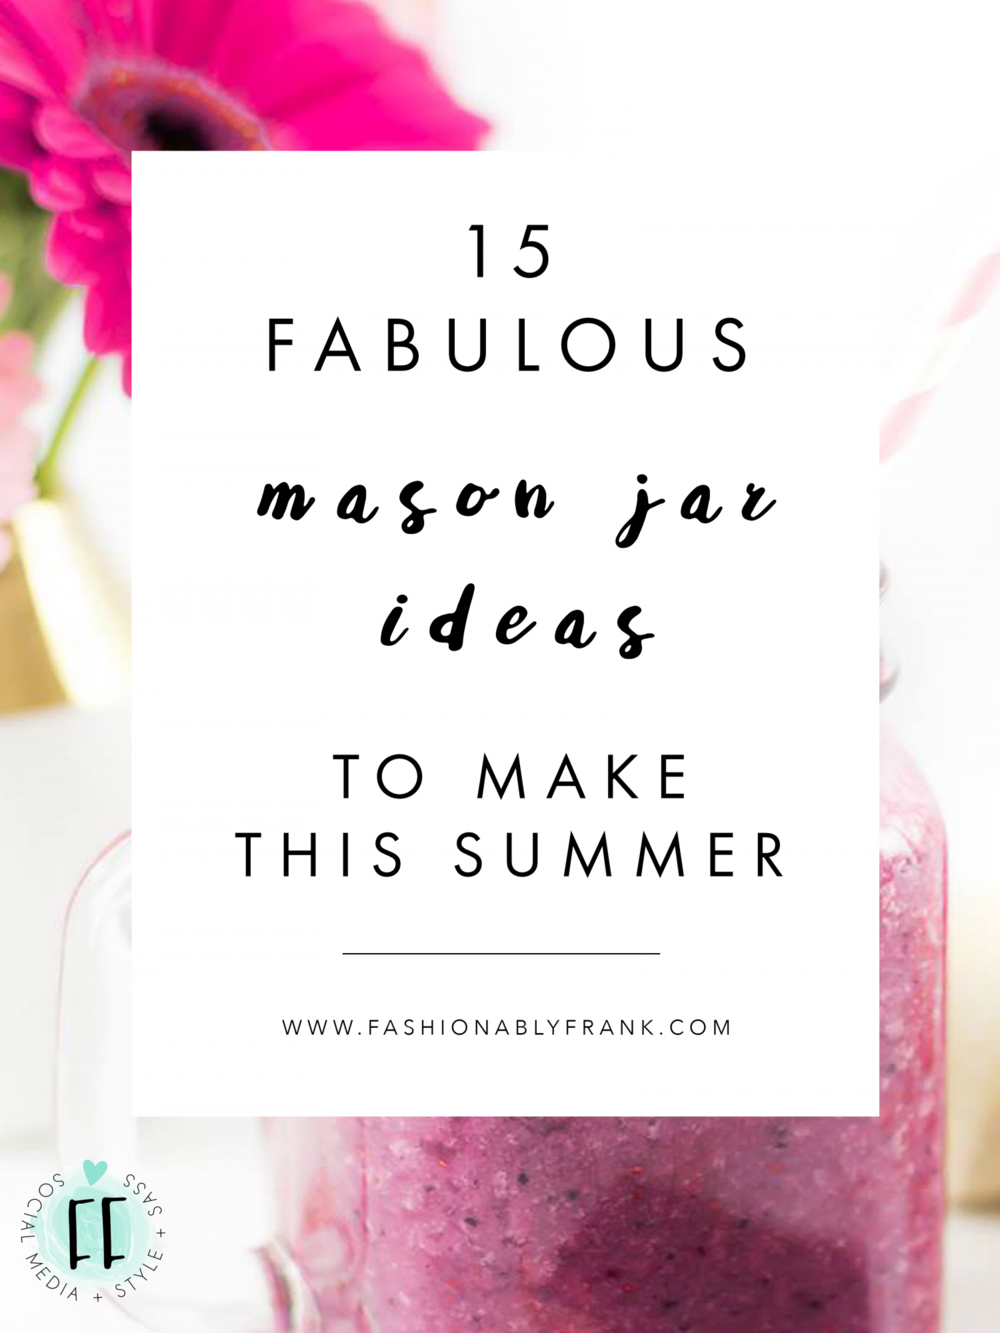 15 Fabulous Mason Jar Ideas to Make This Summer | Fashionably Frank Blog